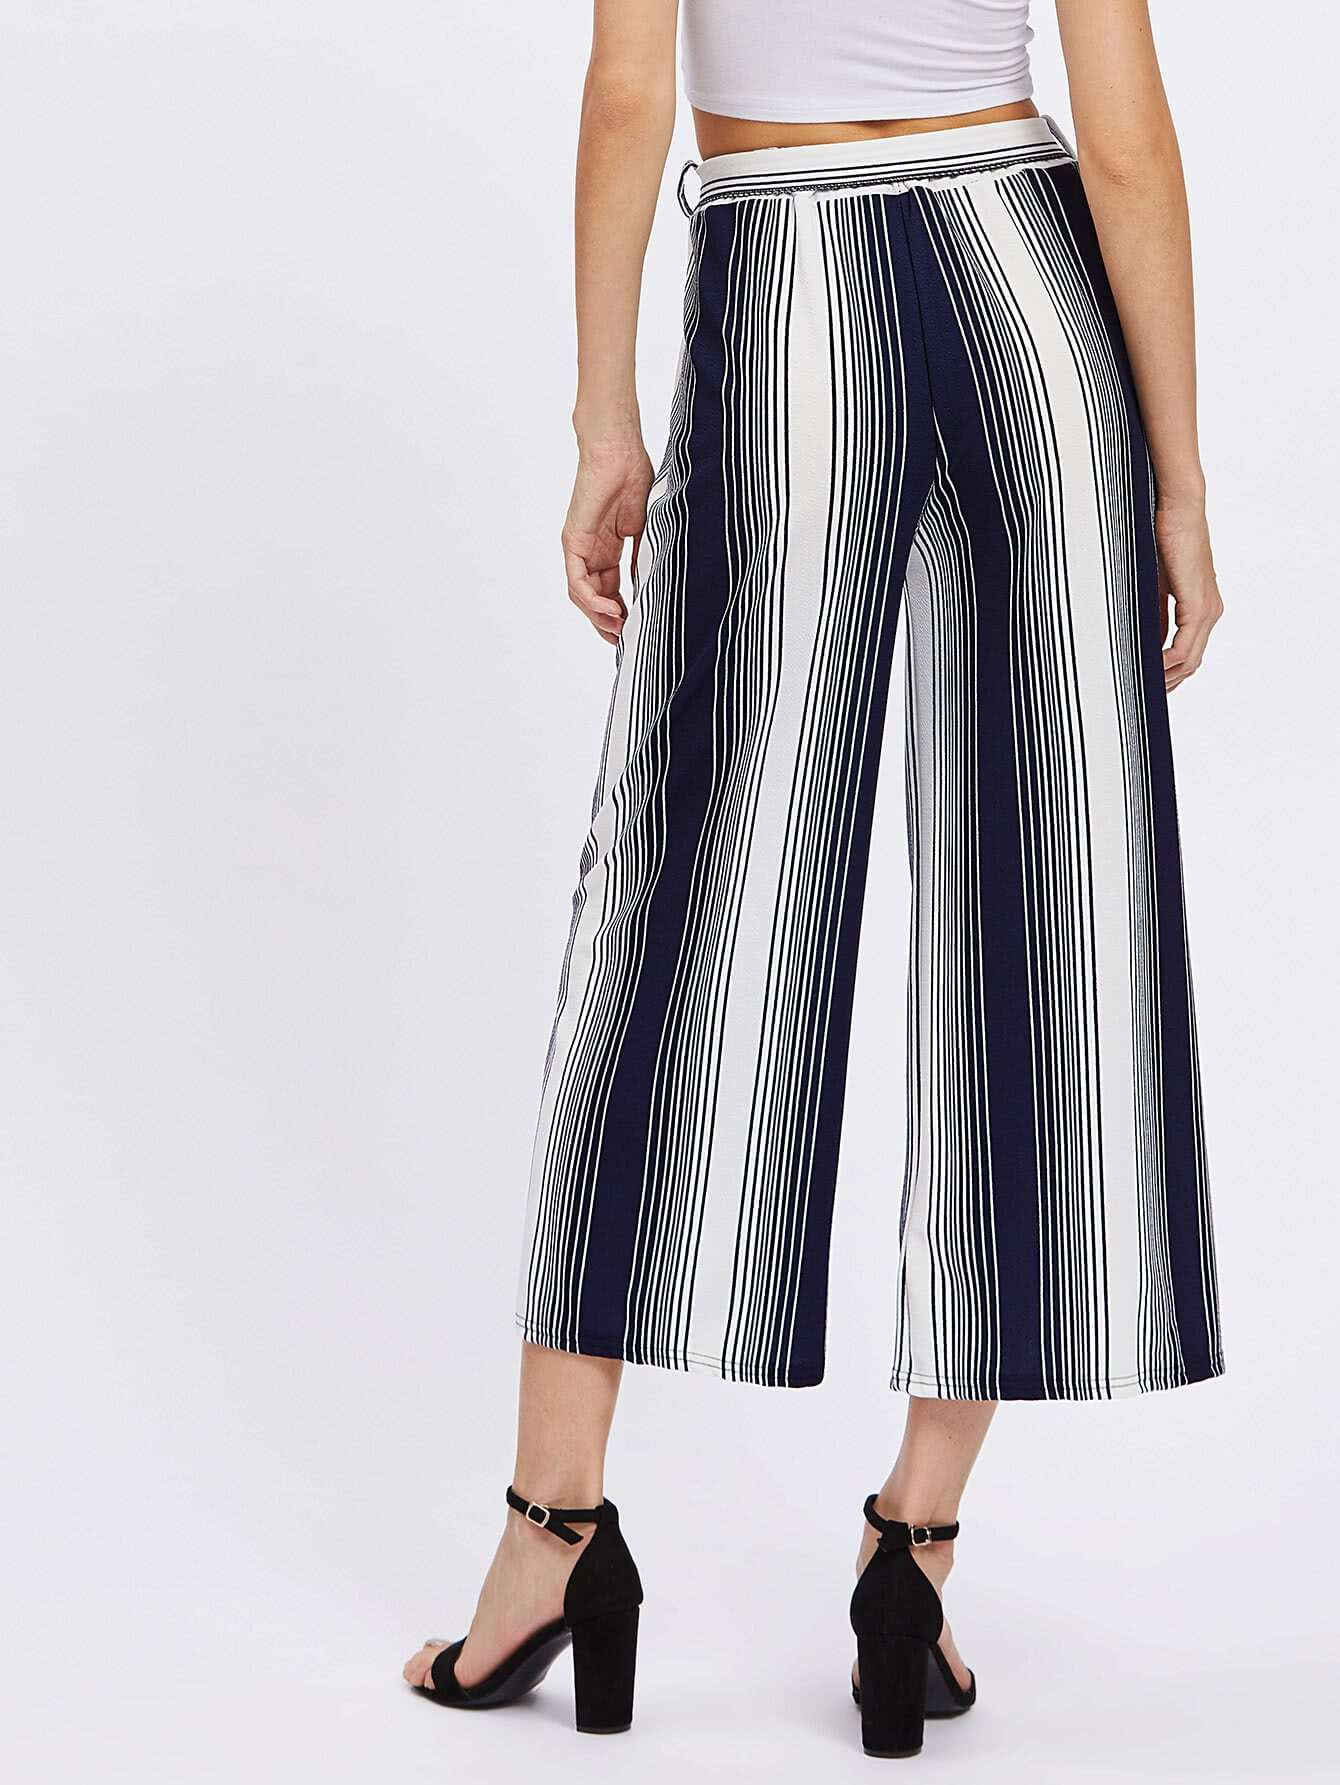 Pantalones de rayas verticales con cord n spanish romwe - Paredes a rayas verticales ...